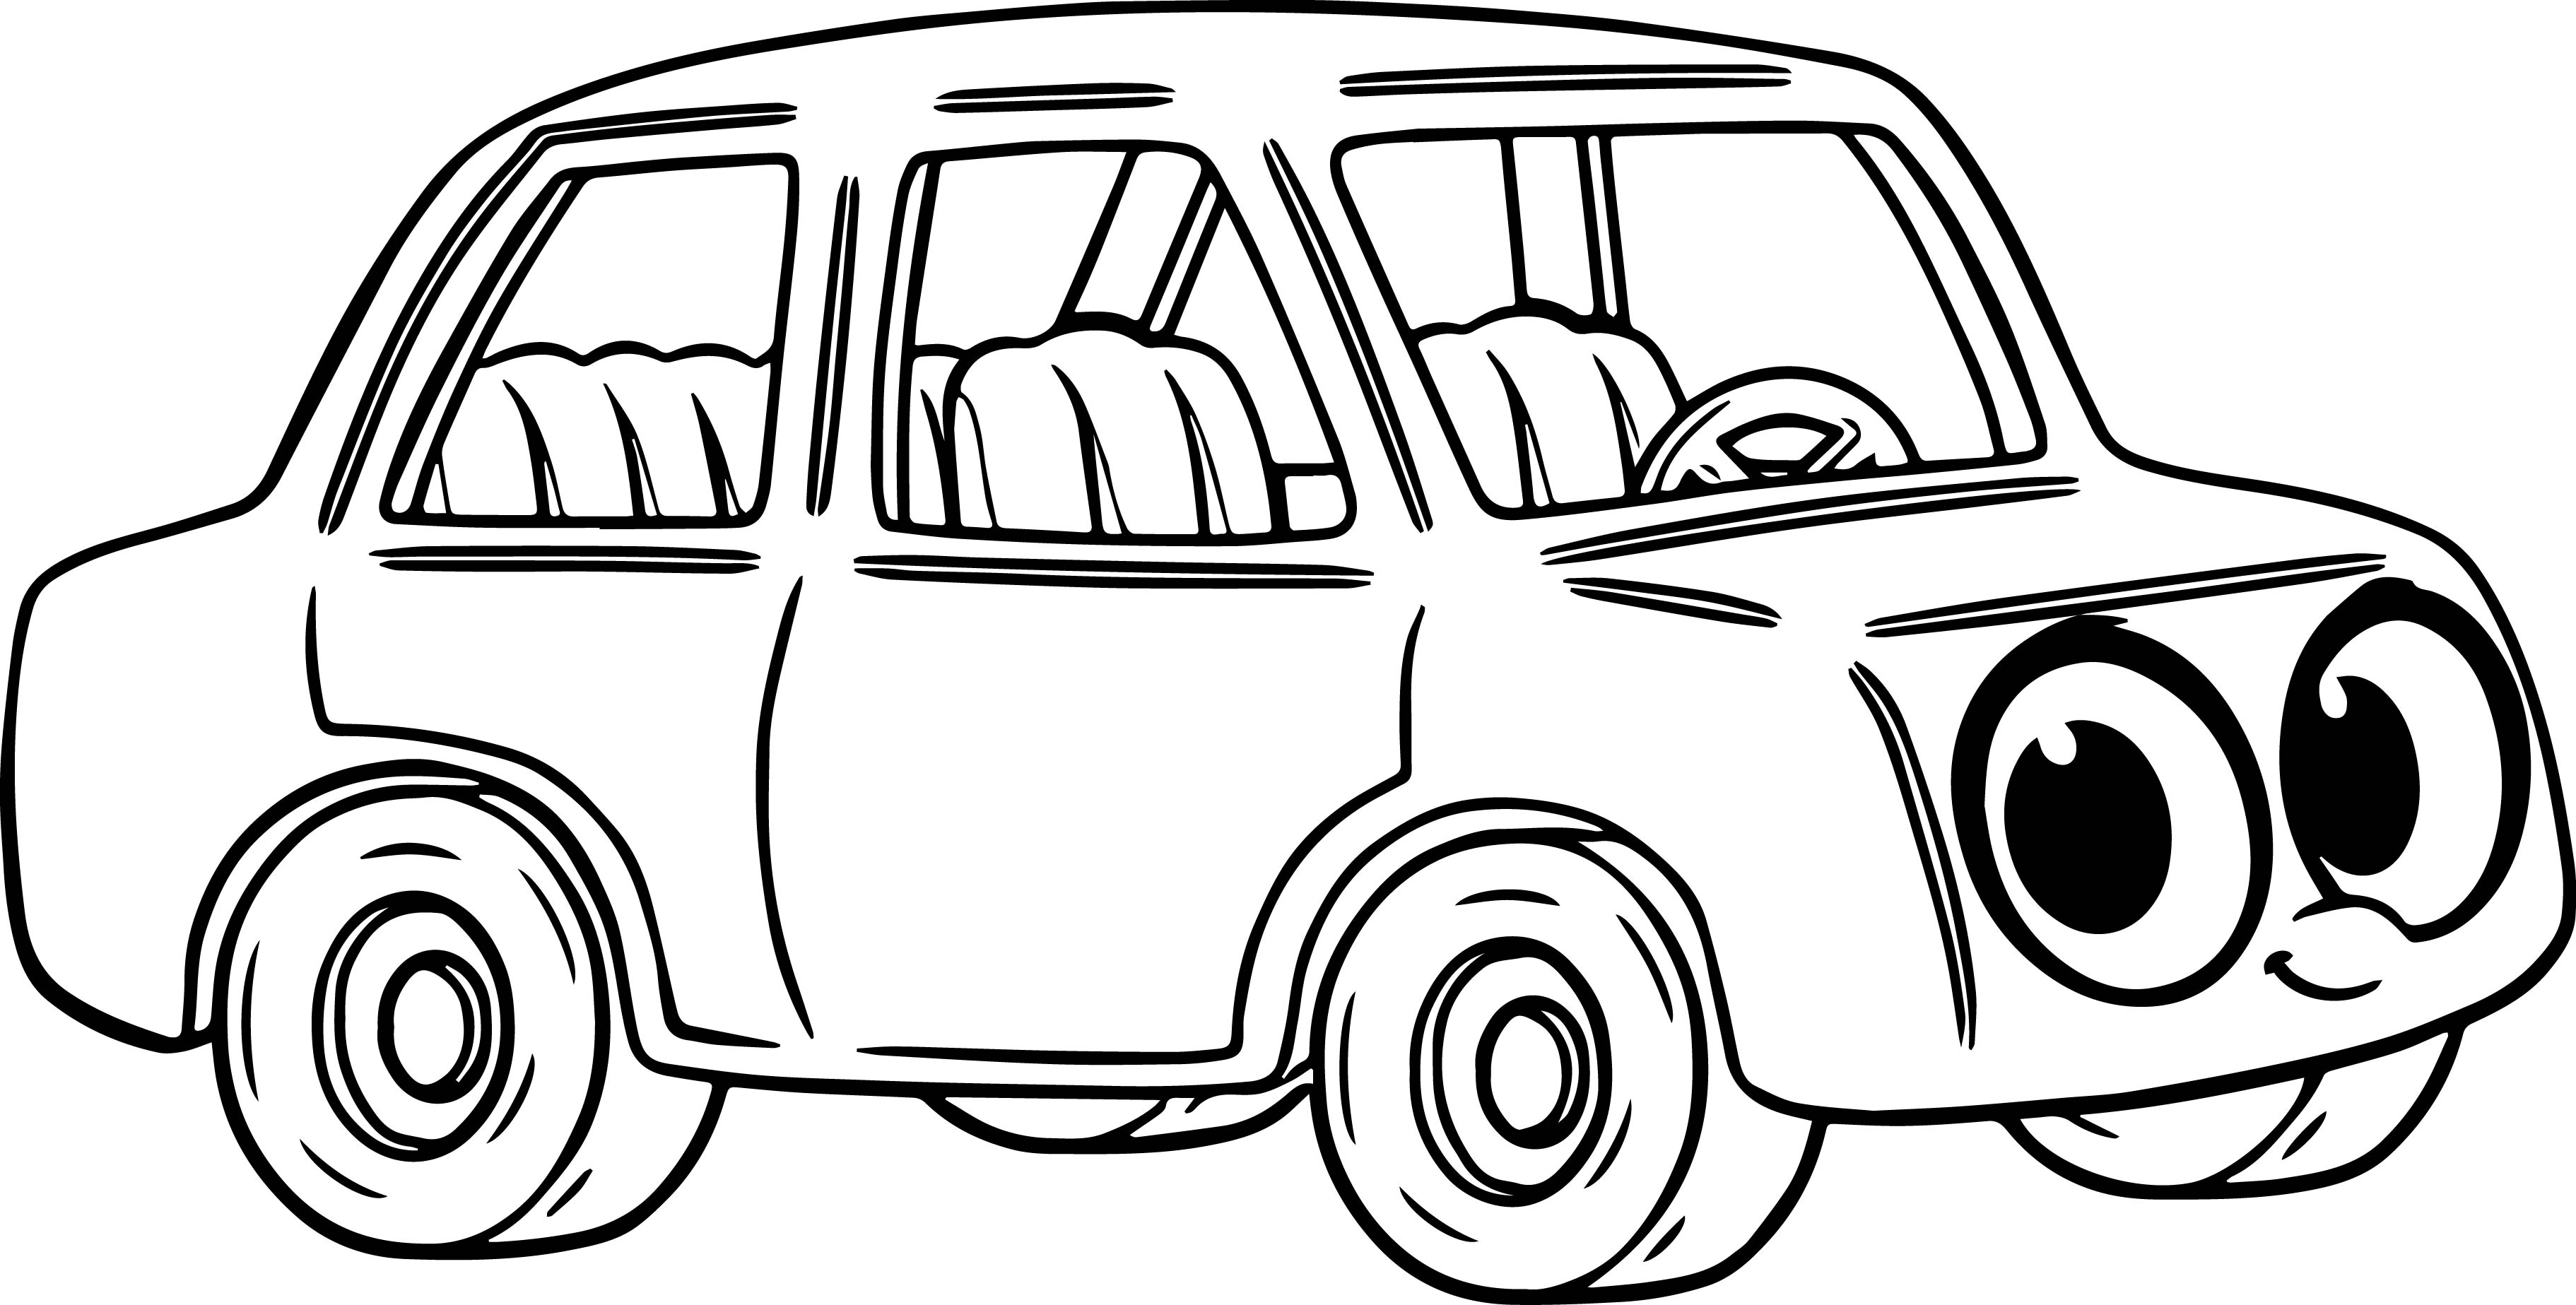 Cartoon drawing car at getdrawings free for personal use